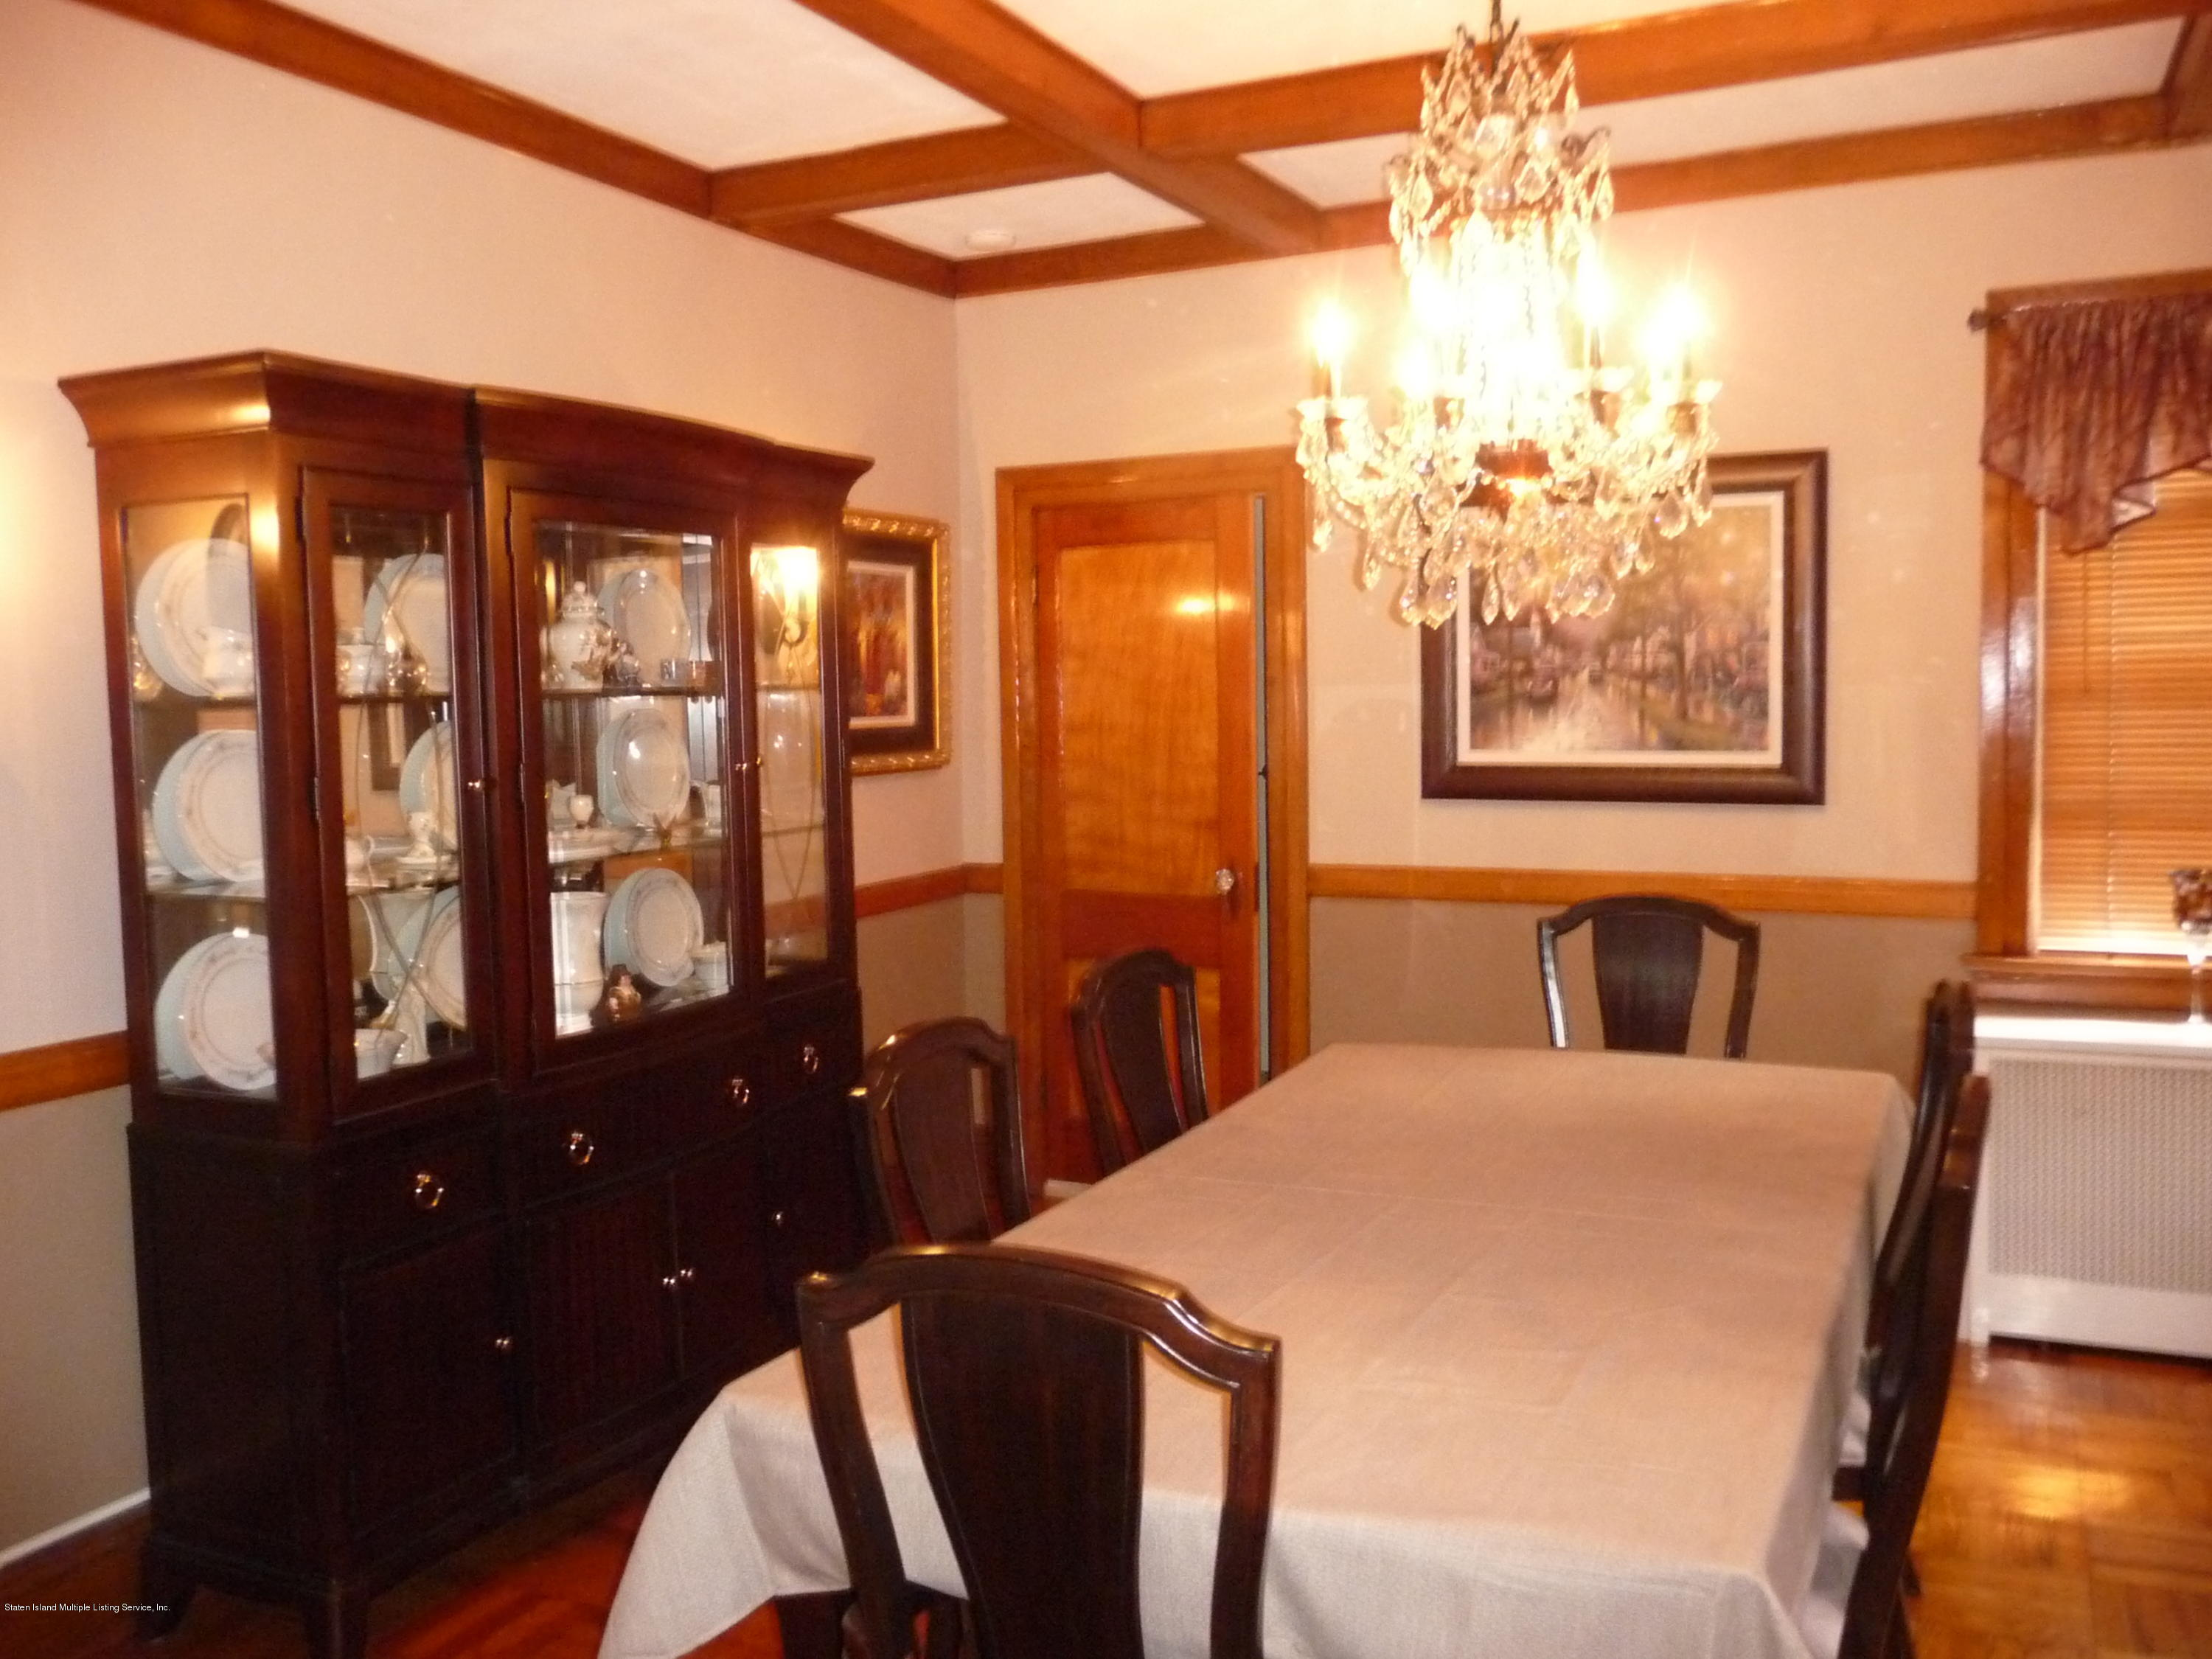 Single Family - Detached 77 Todt Hill Road  Staten Island, NY 10314, MLS-1129718-24